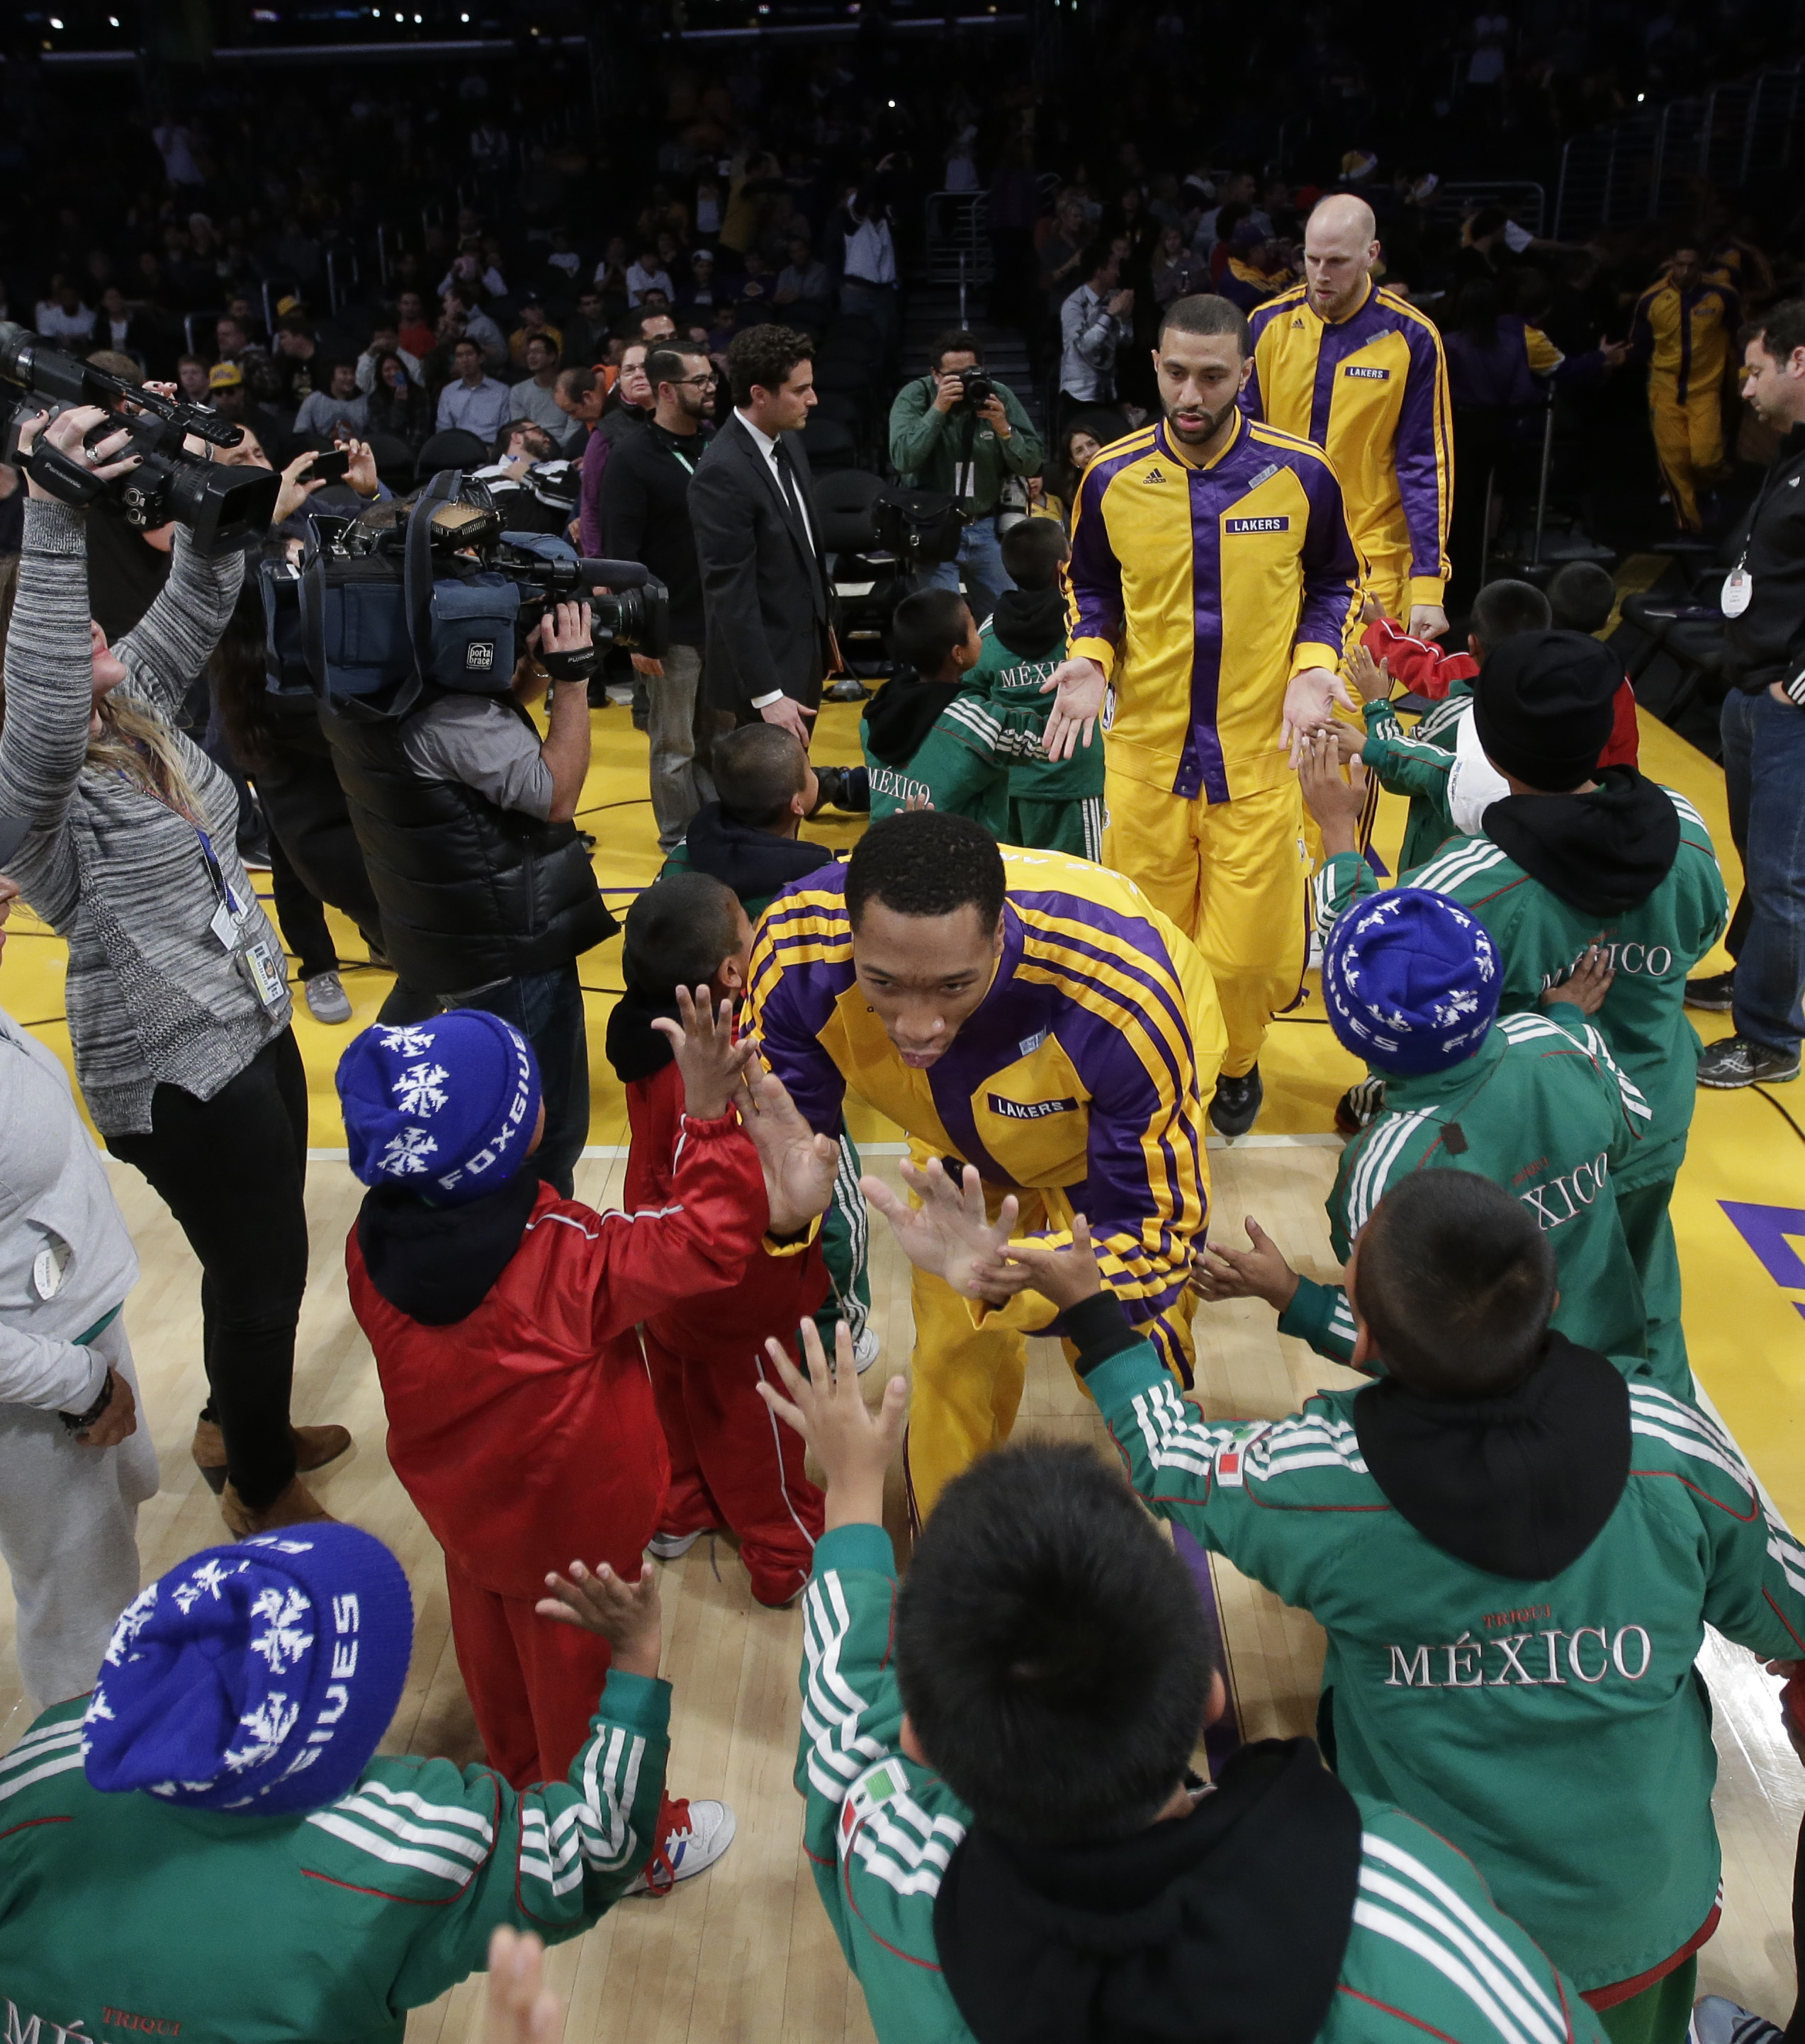 Members of Triqui kids basketball team, made up of children from the mountainous region of Oaxaca, Mexico, greet the Los Angeles Lakers before an NBA basketball game against the Minnesota Timberwolves in Los Angeles, Friday, Dec. 20, 2013. (AP Photo/Chris Carlson)